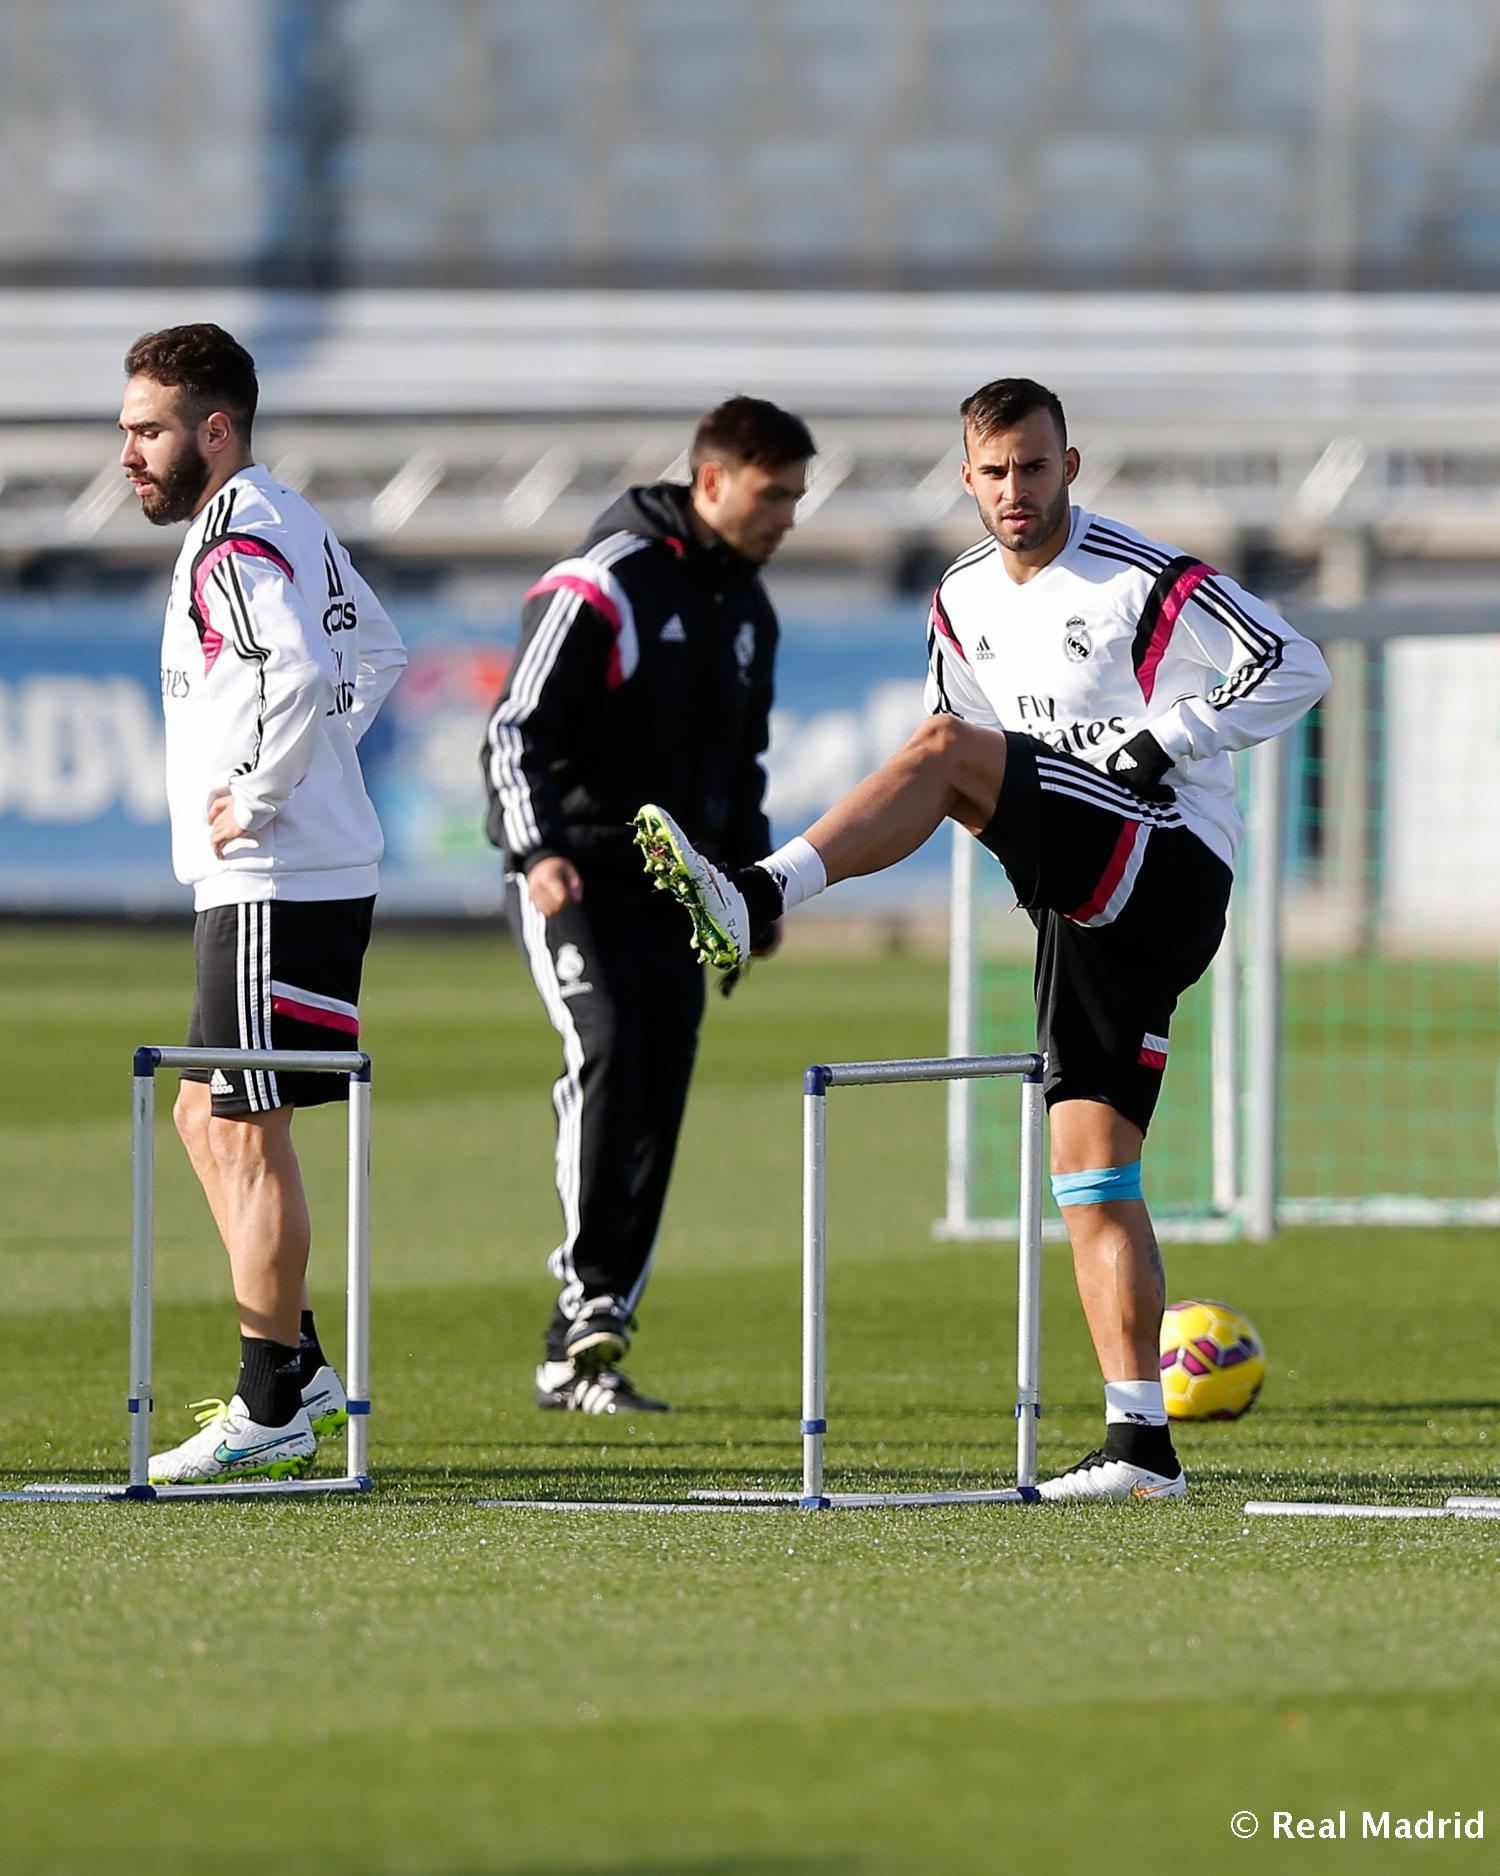 Real Madrid - Entrenamiento del Real Madrid - 04-12-2014